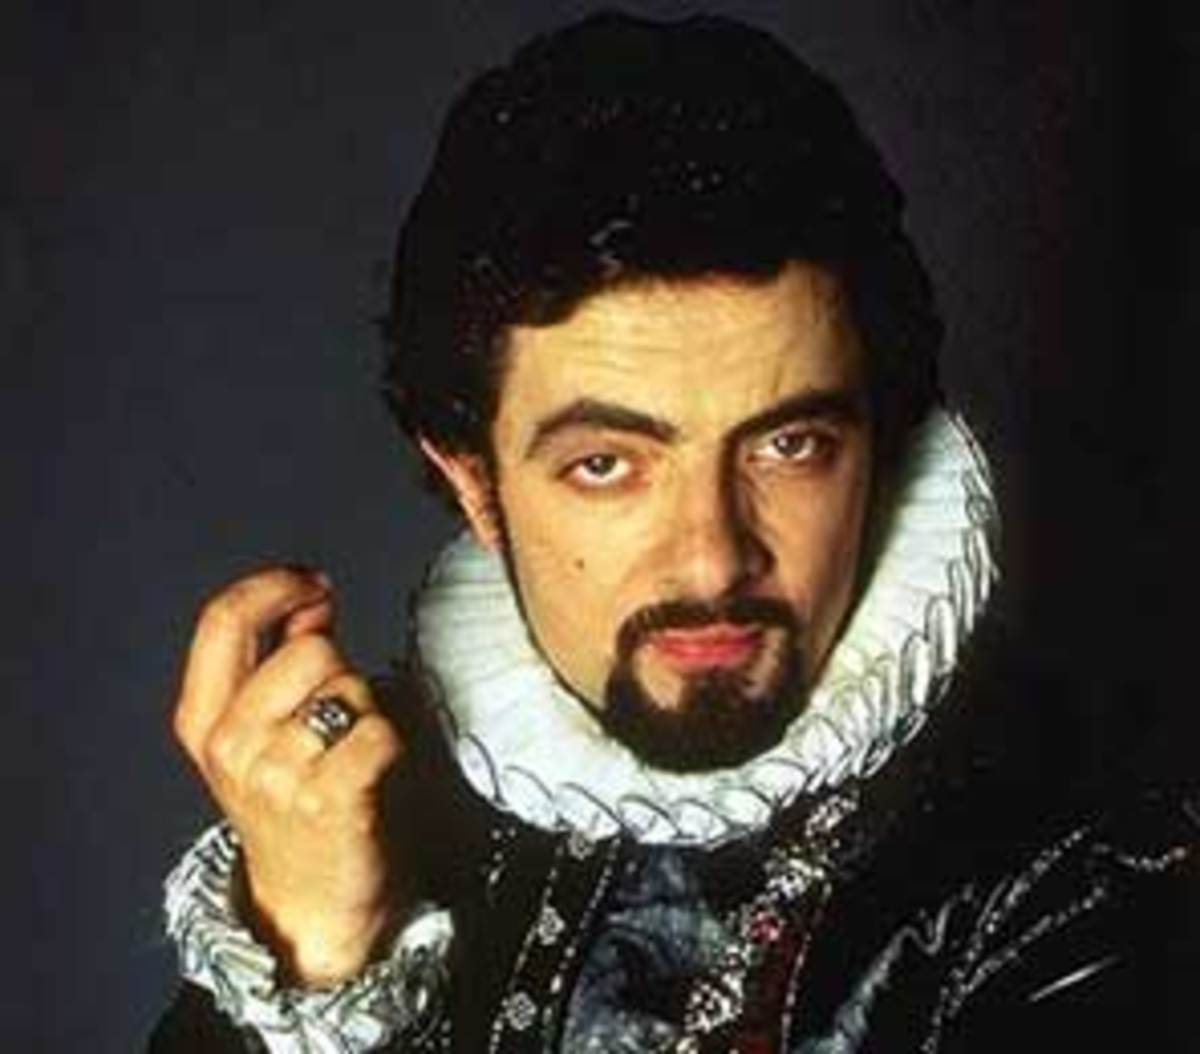 Atkinson as Lord Edmund Blackadder in the second series.